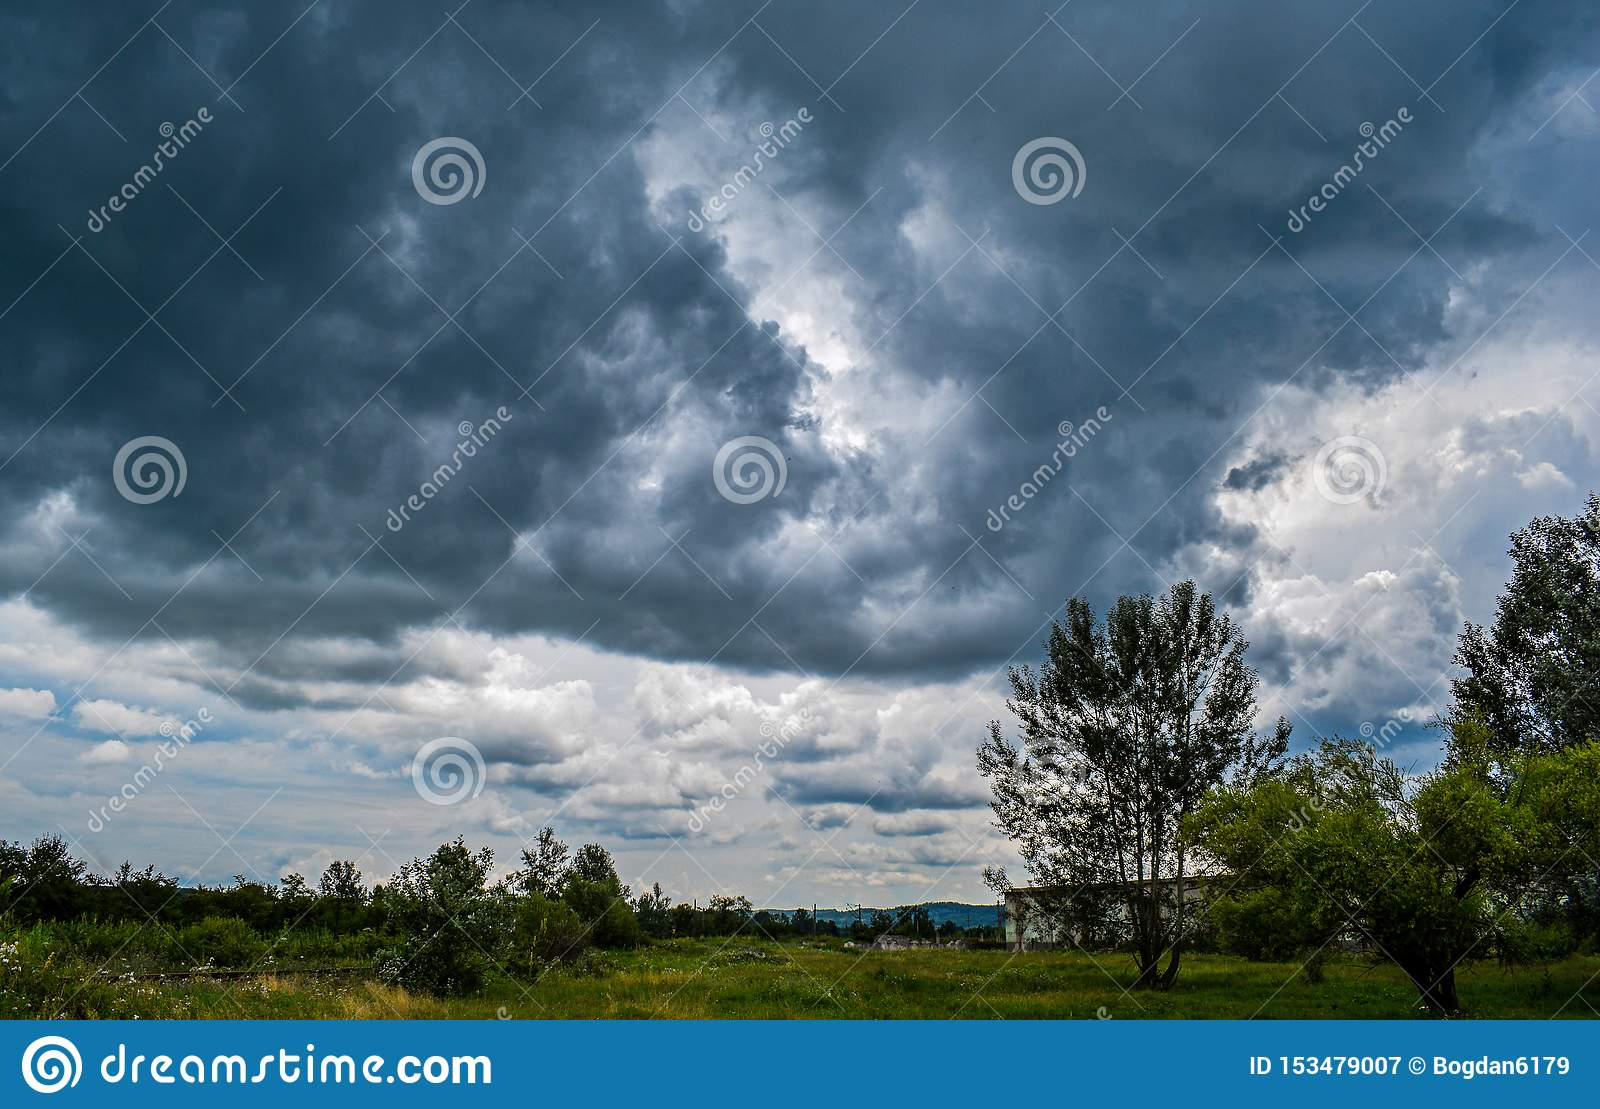 A field of green trees and a sky full of black, threatening clouds. Strong storm begins